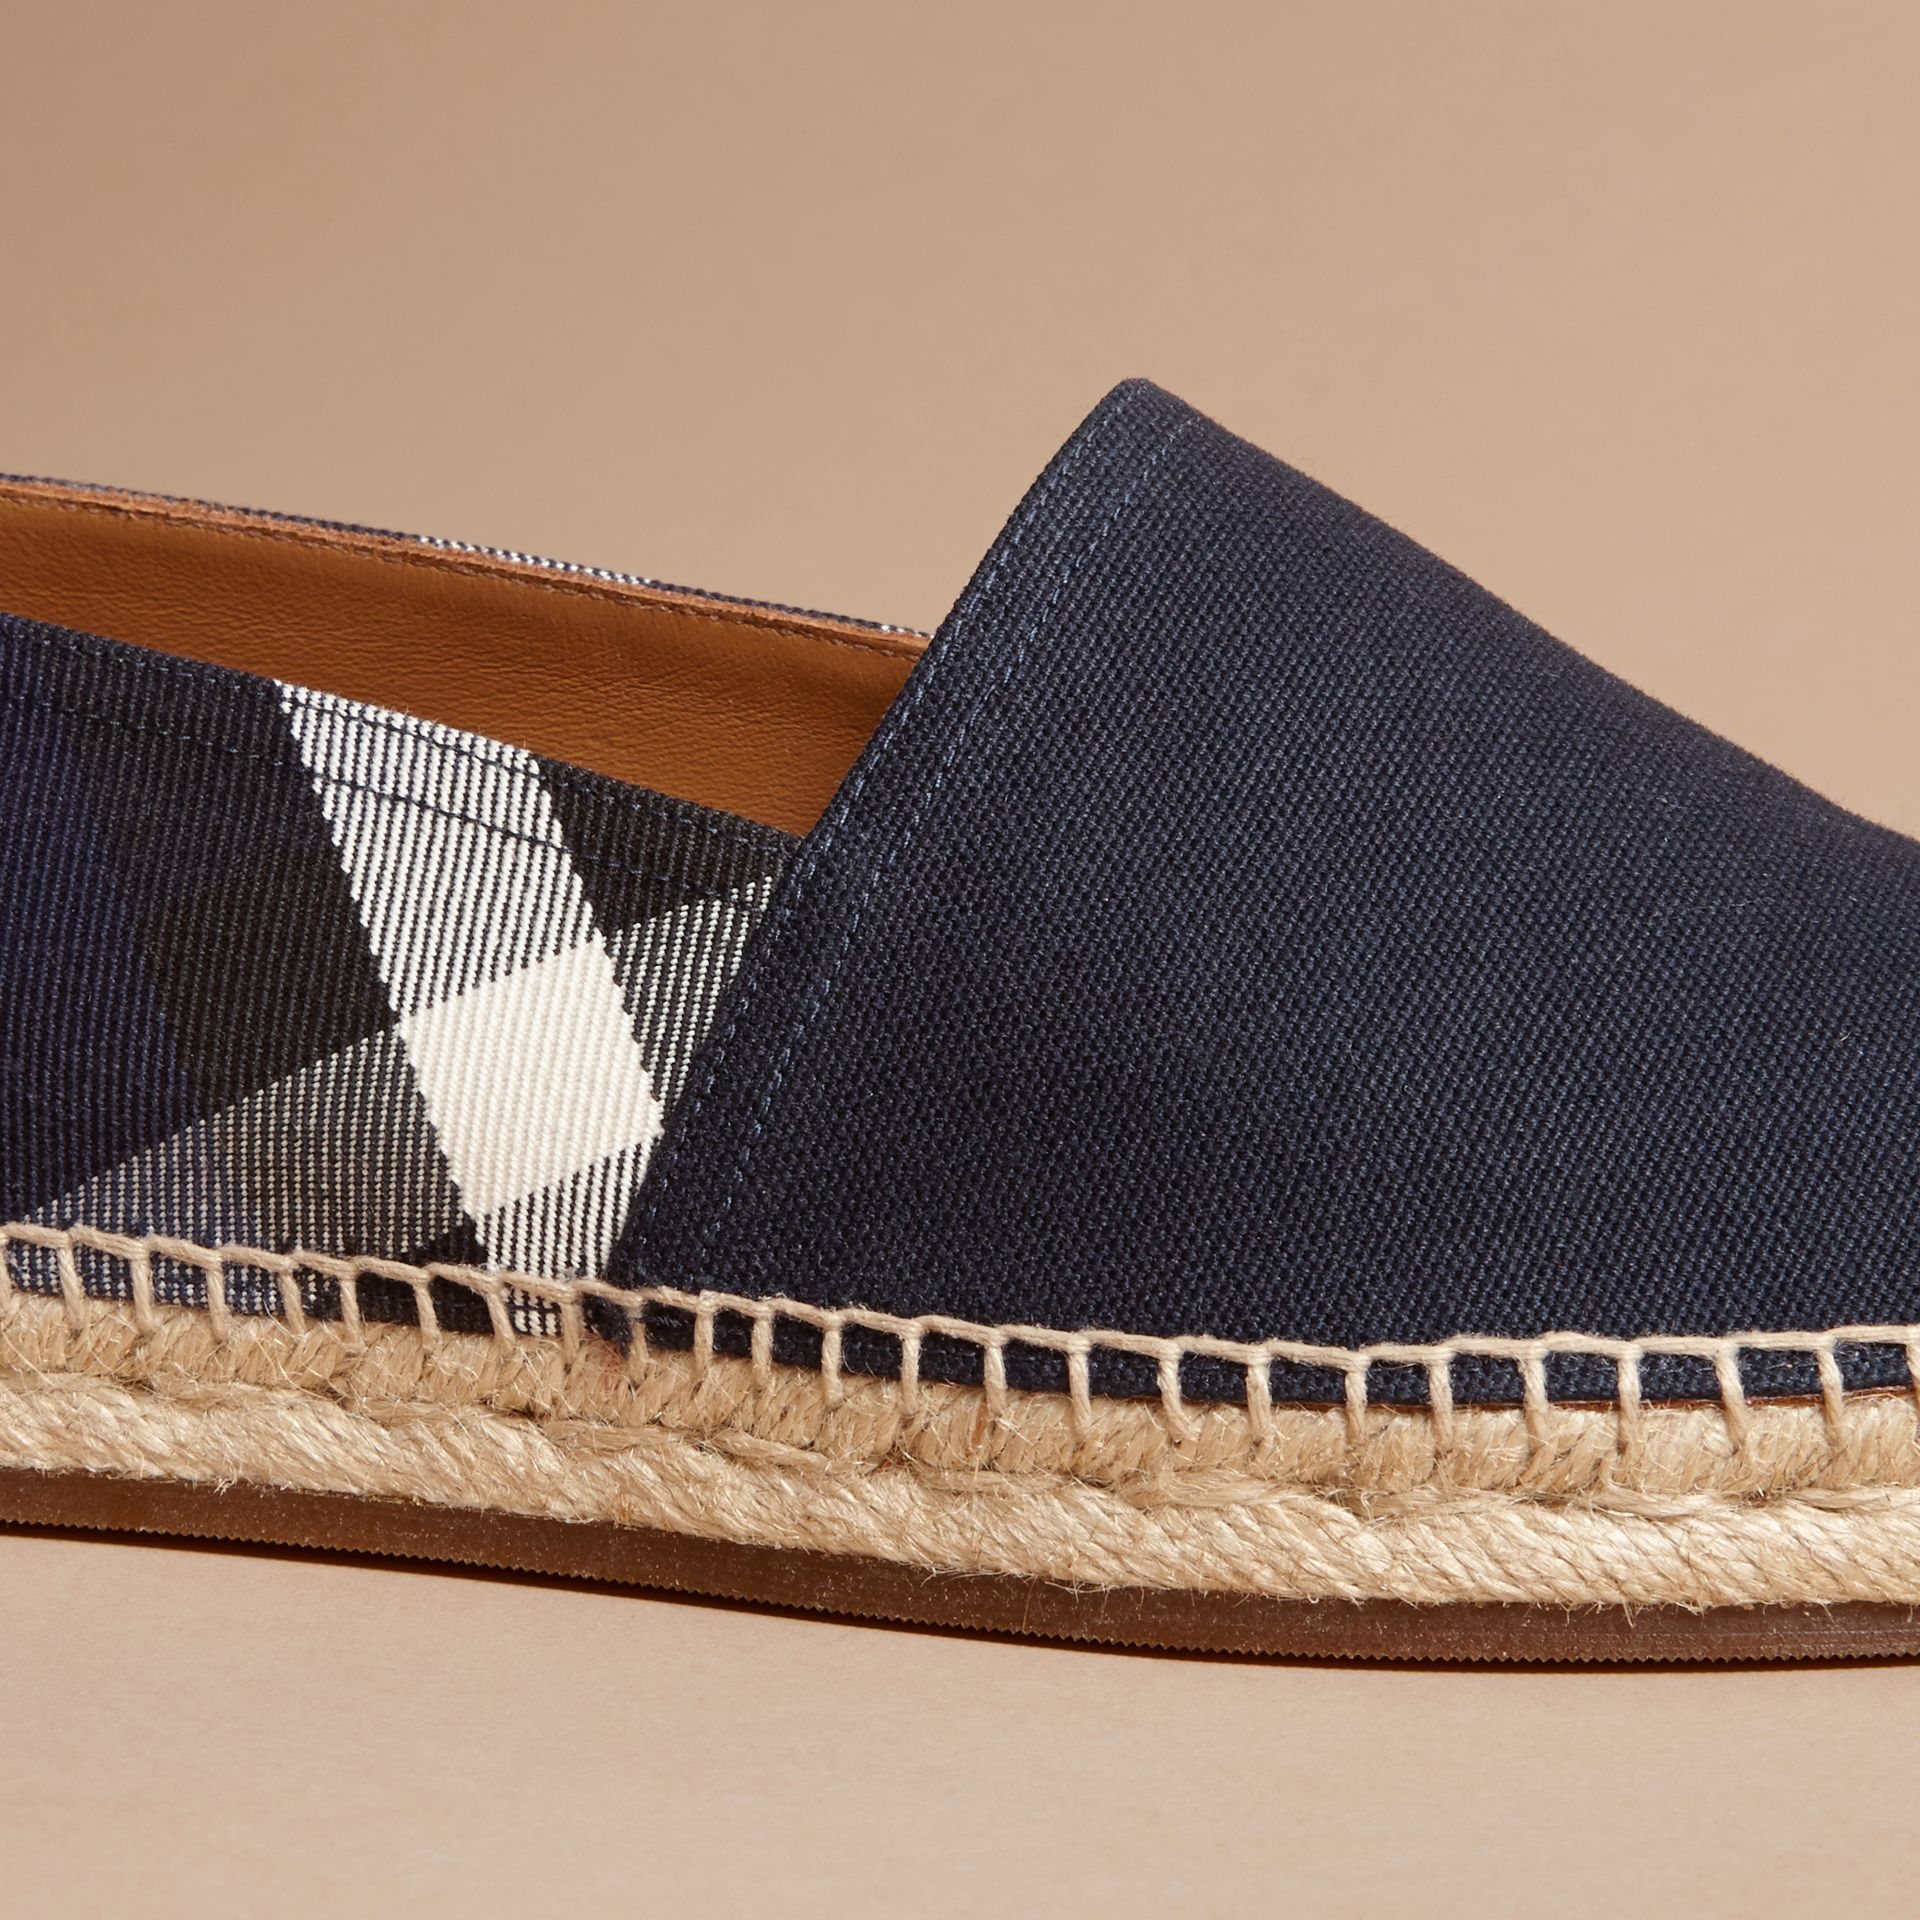 Overdyed House Check and Cotton Canvas Espadrilles in Indigo Blue - Men | Burberry Canada - gallery image 2